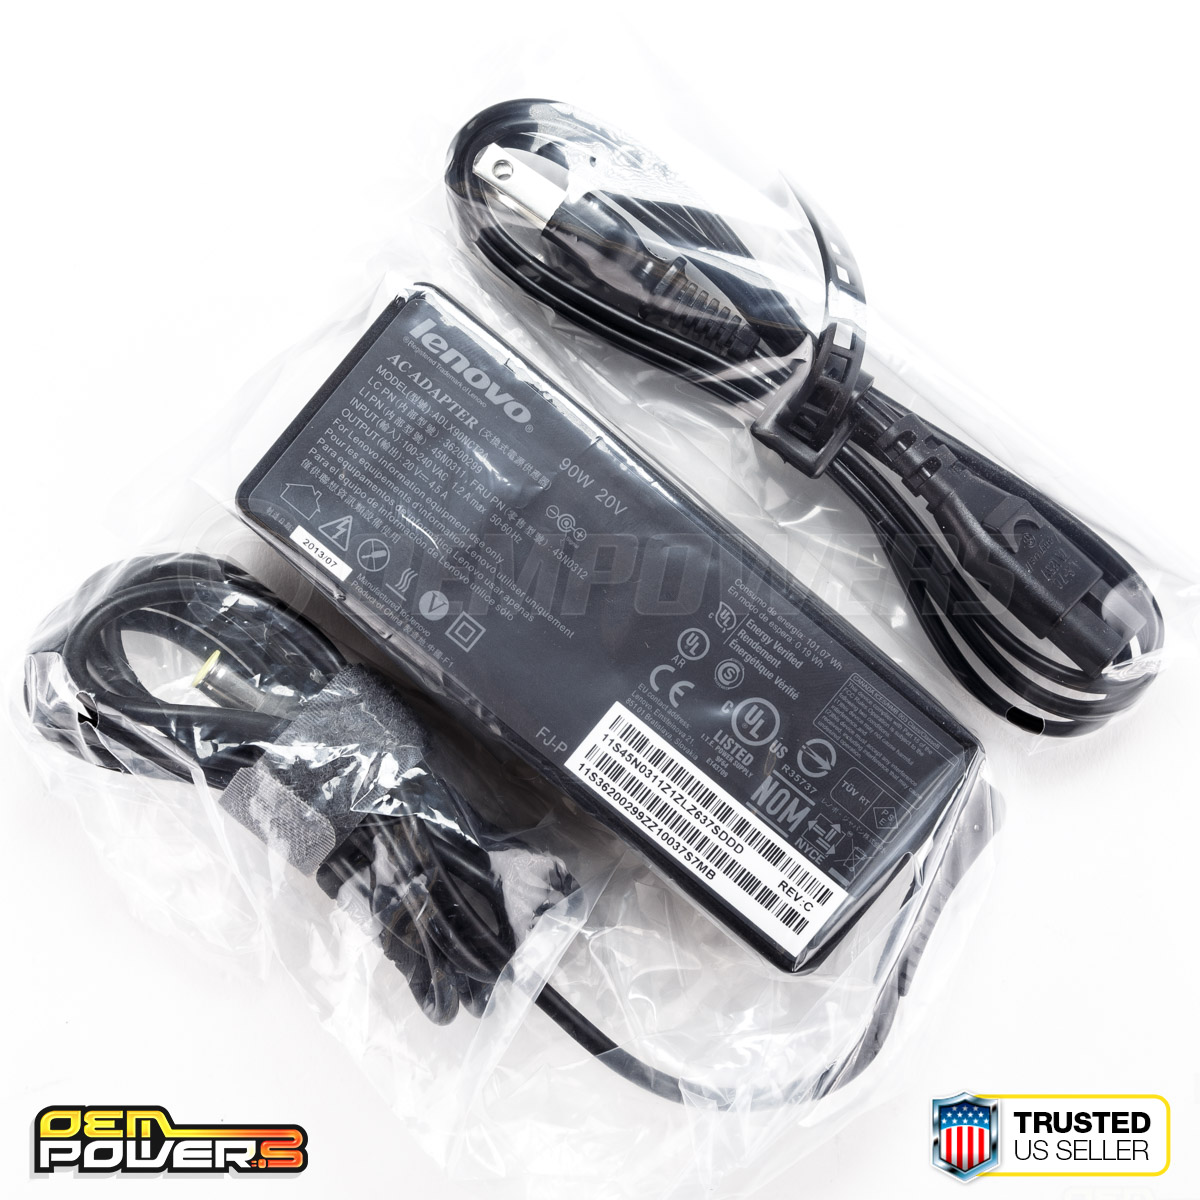 Details about Genuine Lenovo 90W 20V 4 5A Laptop AC Power Adapter Charger  ADLX90NLT2A 45N0307